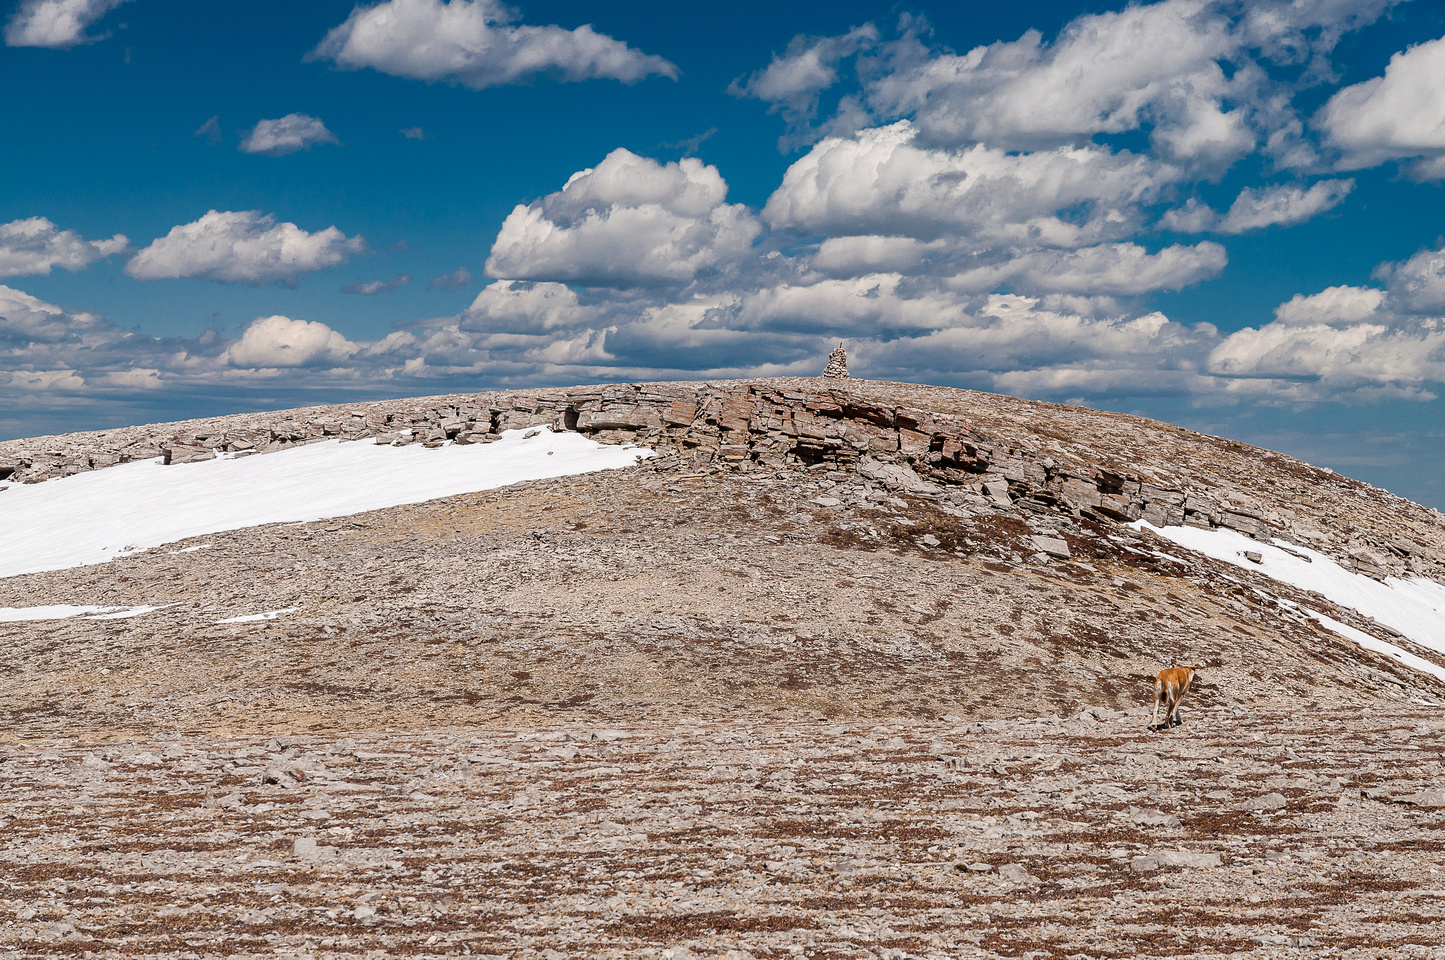 The group traverses over to the lower north summit.